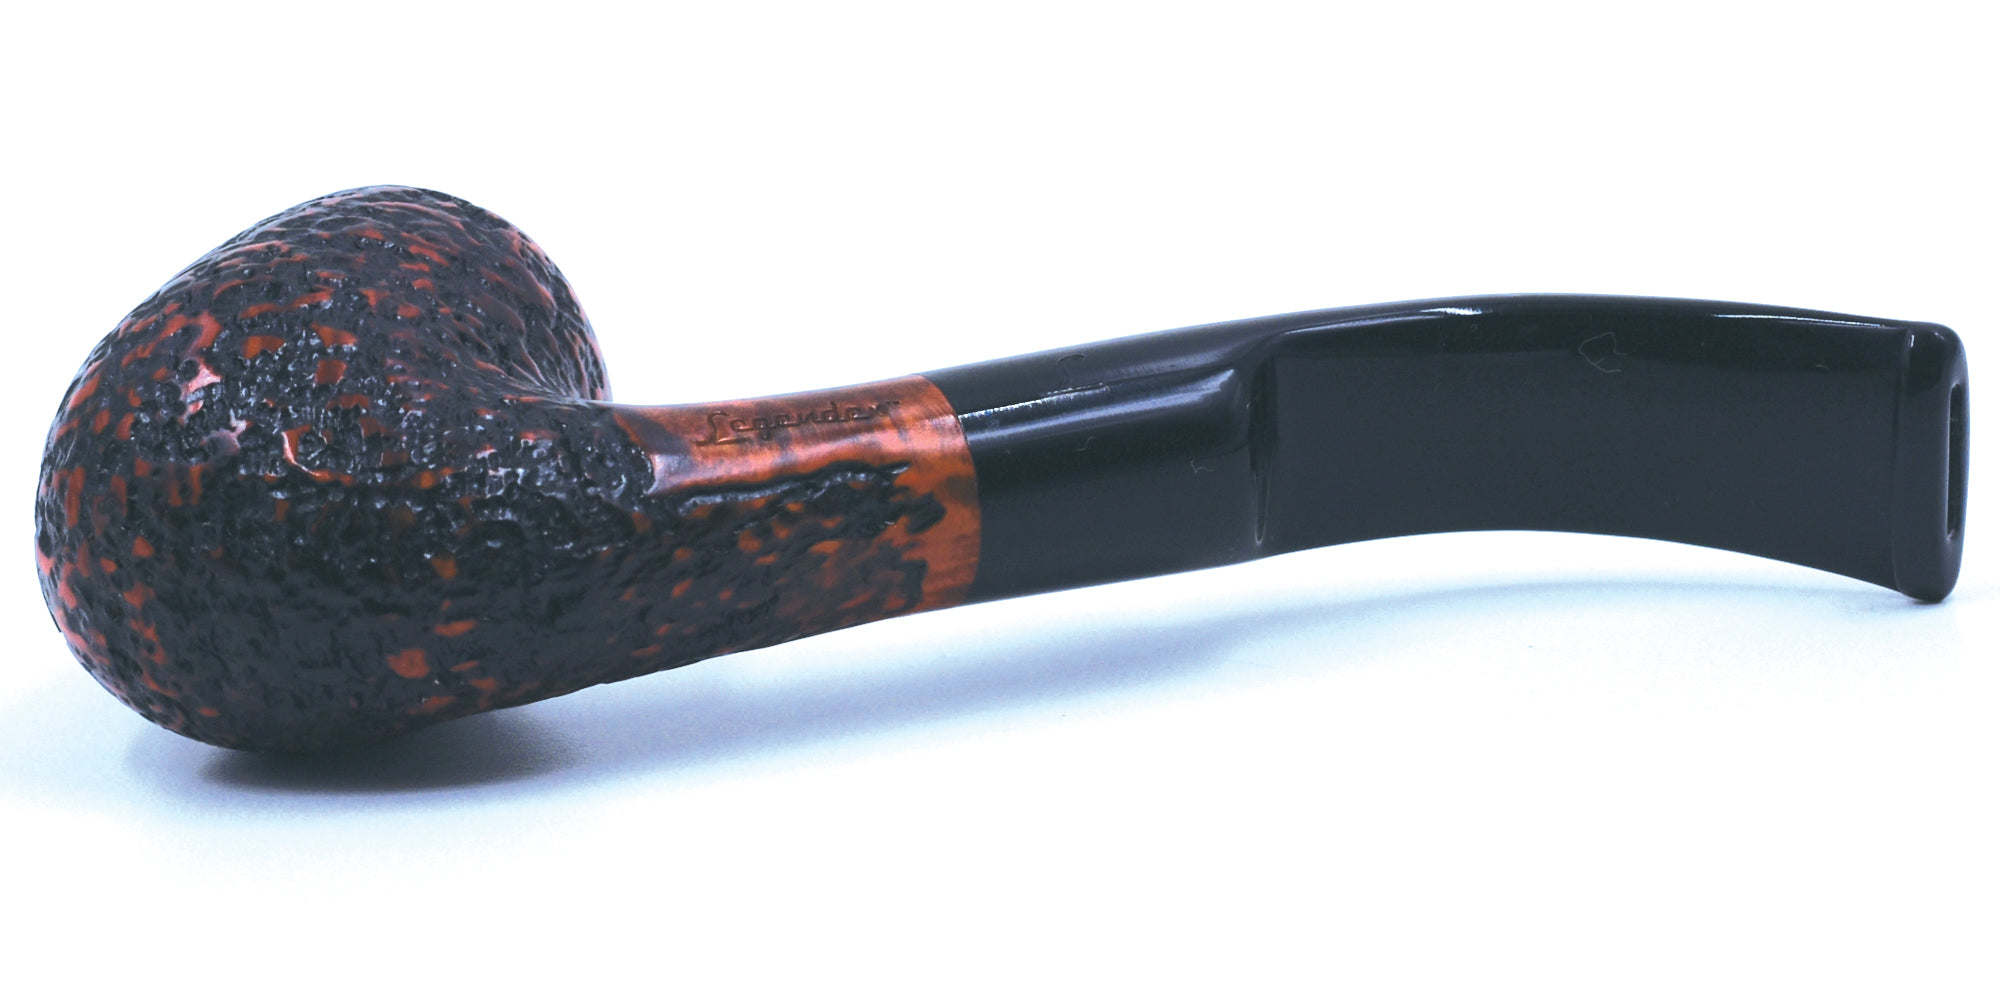 LEGENDEX® SCALADI* 9 MM Filtered Briar Smoking Pipe Made In Italy 01-08-107